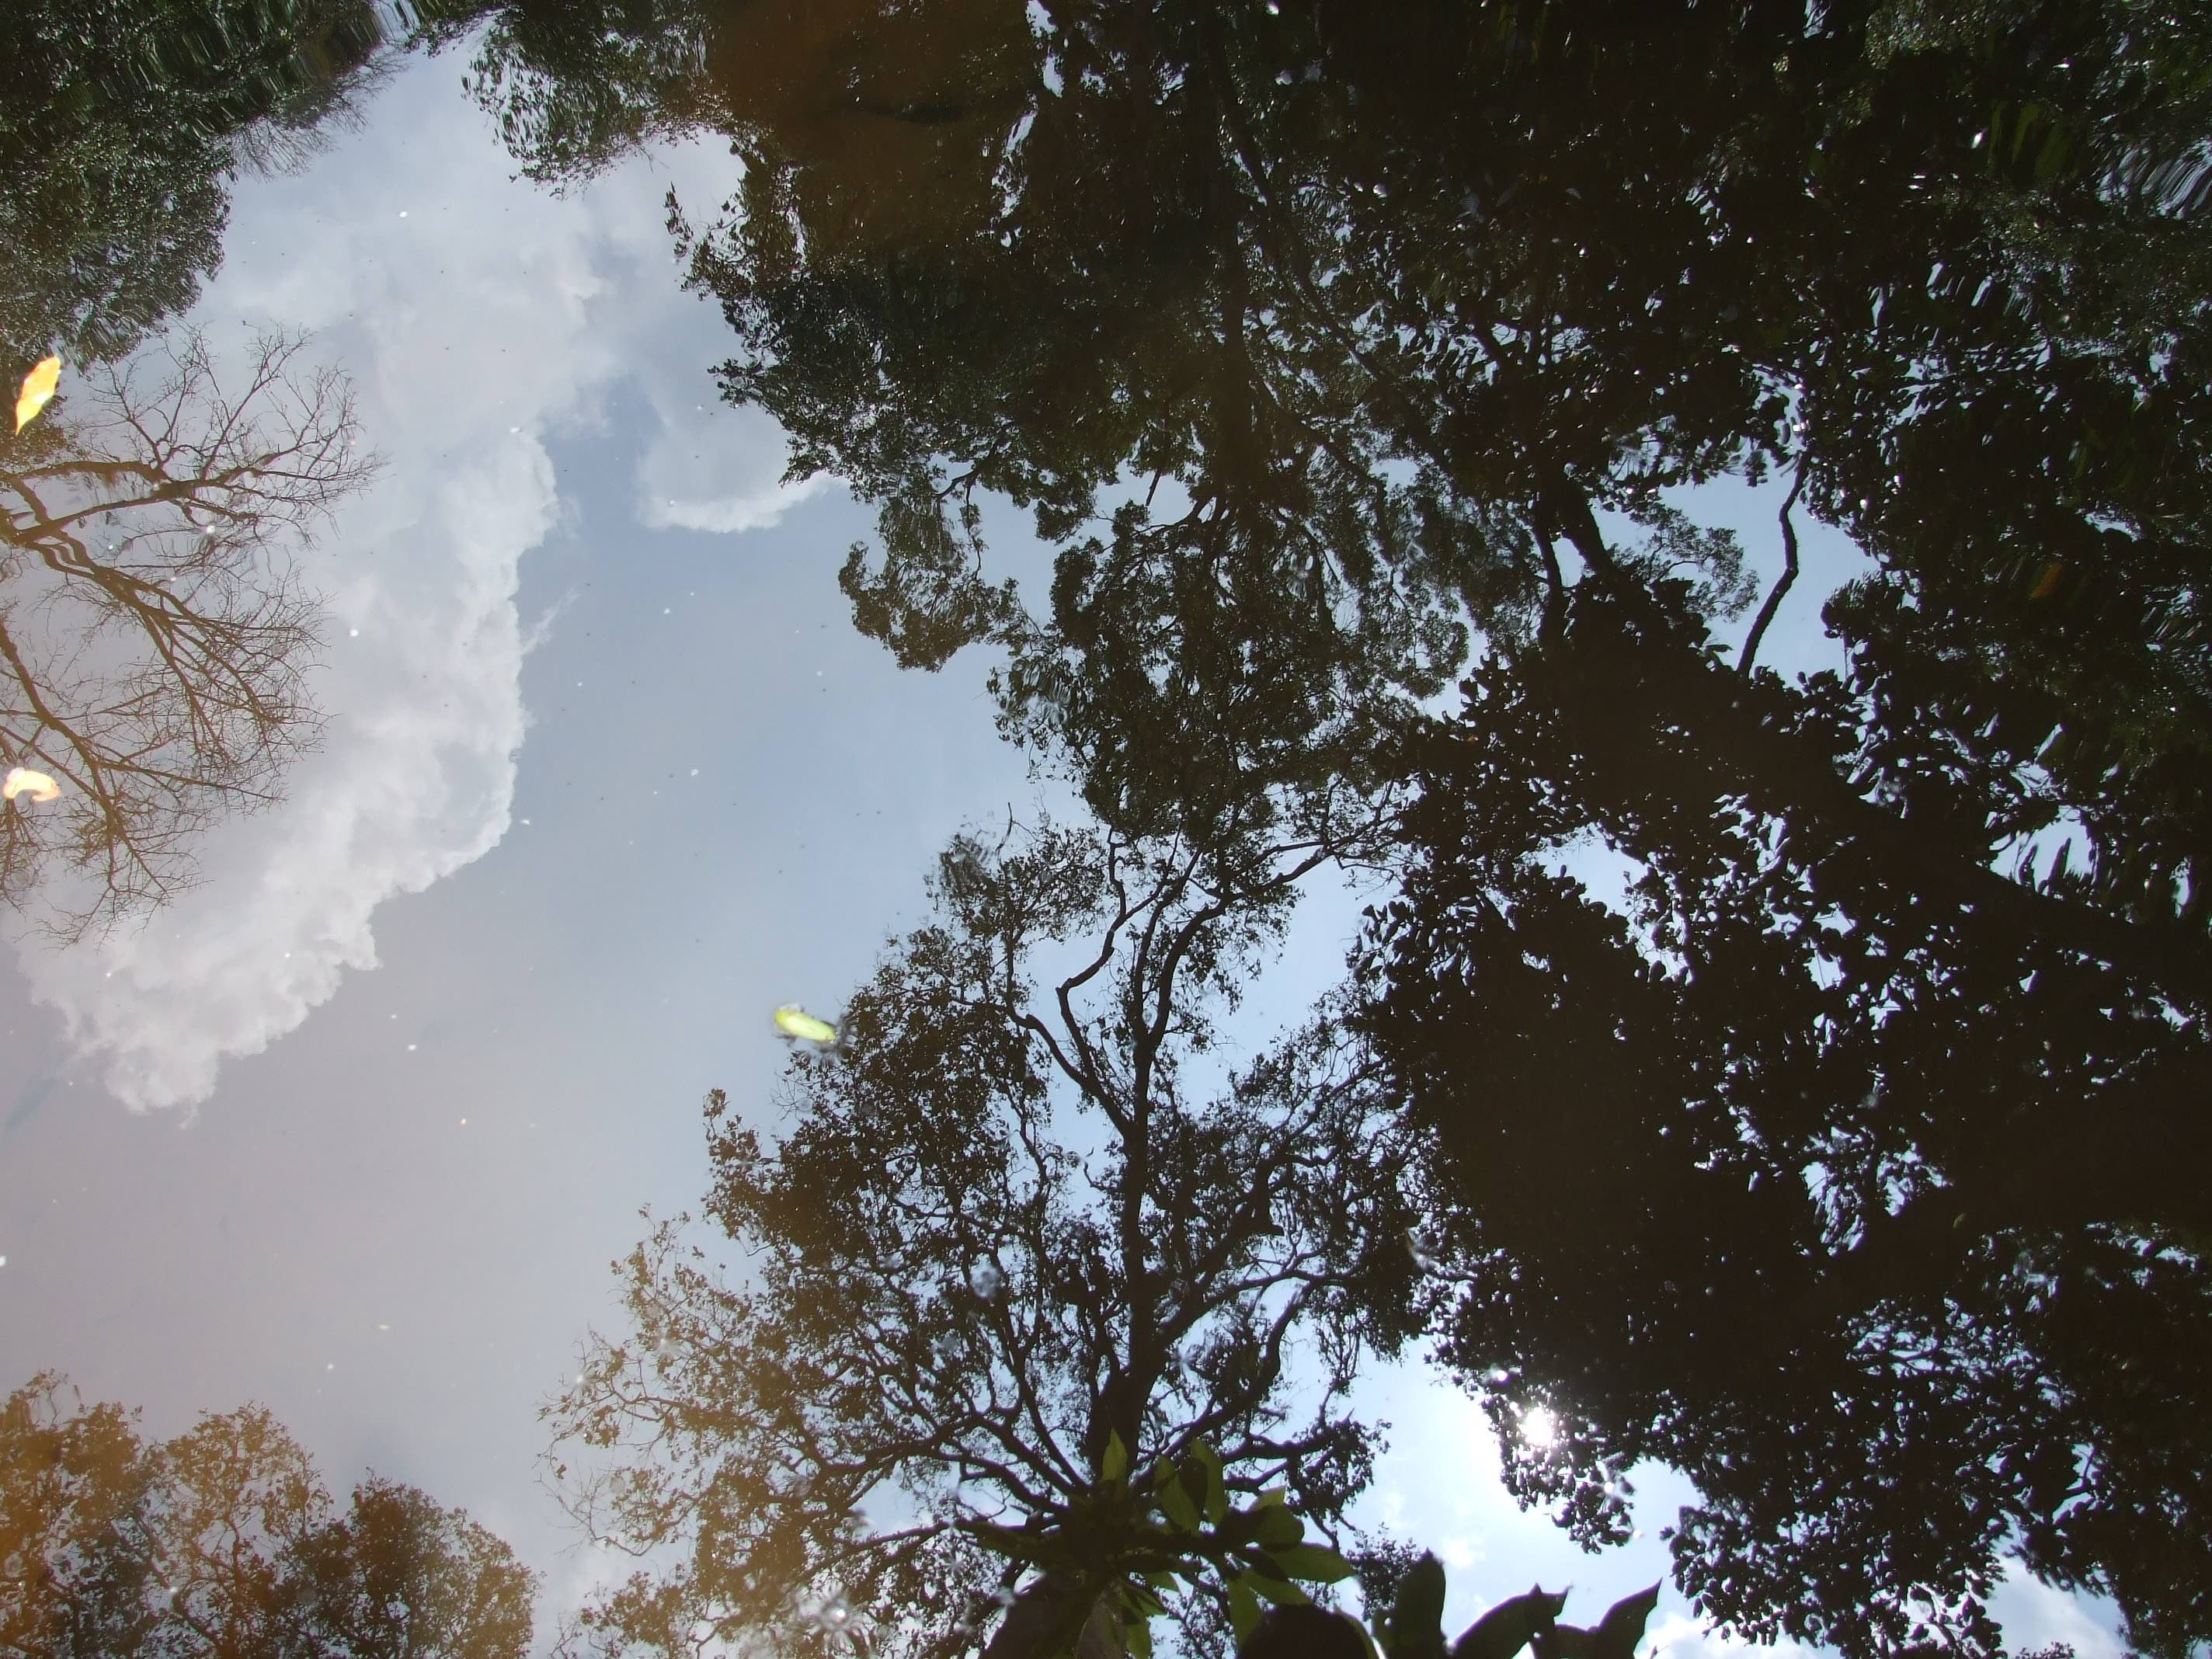 A reflection of the rainforest canopy. Credit: Nisarg Prakash